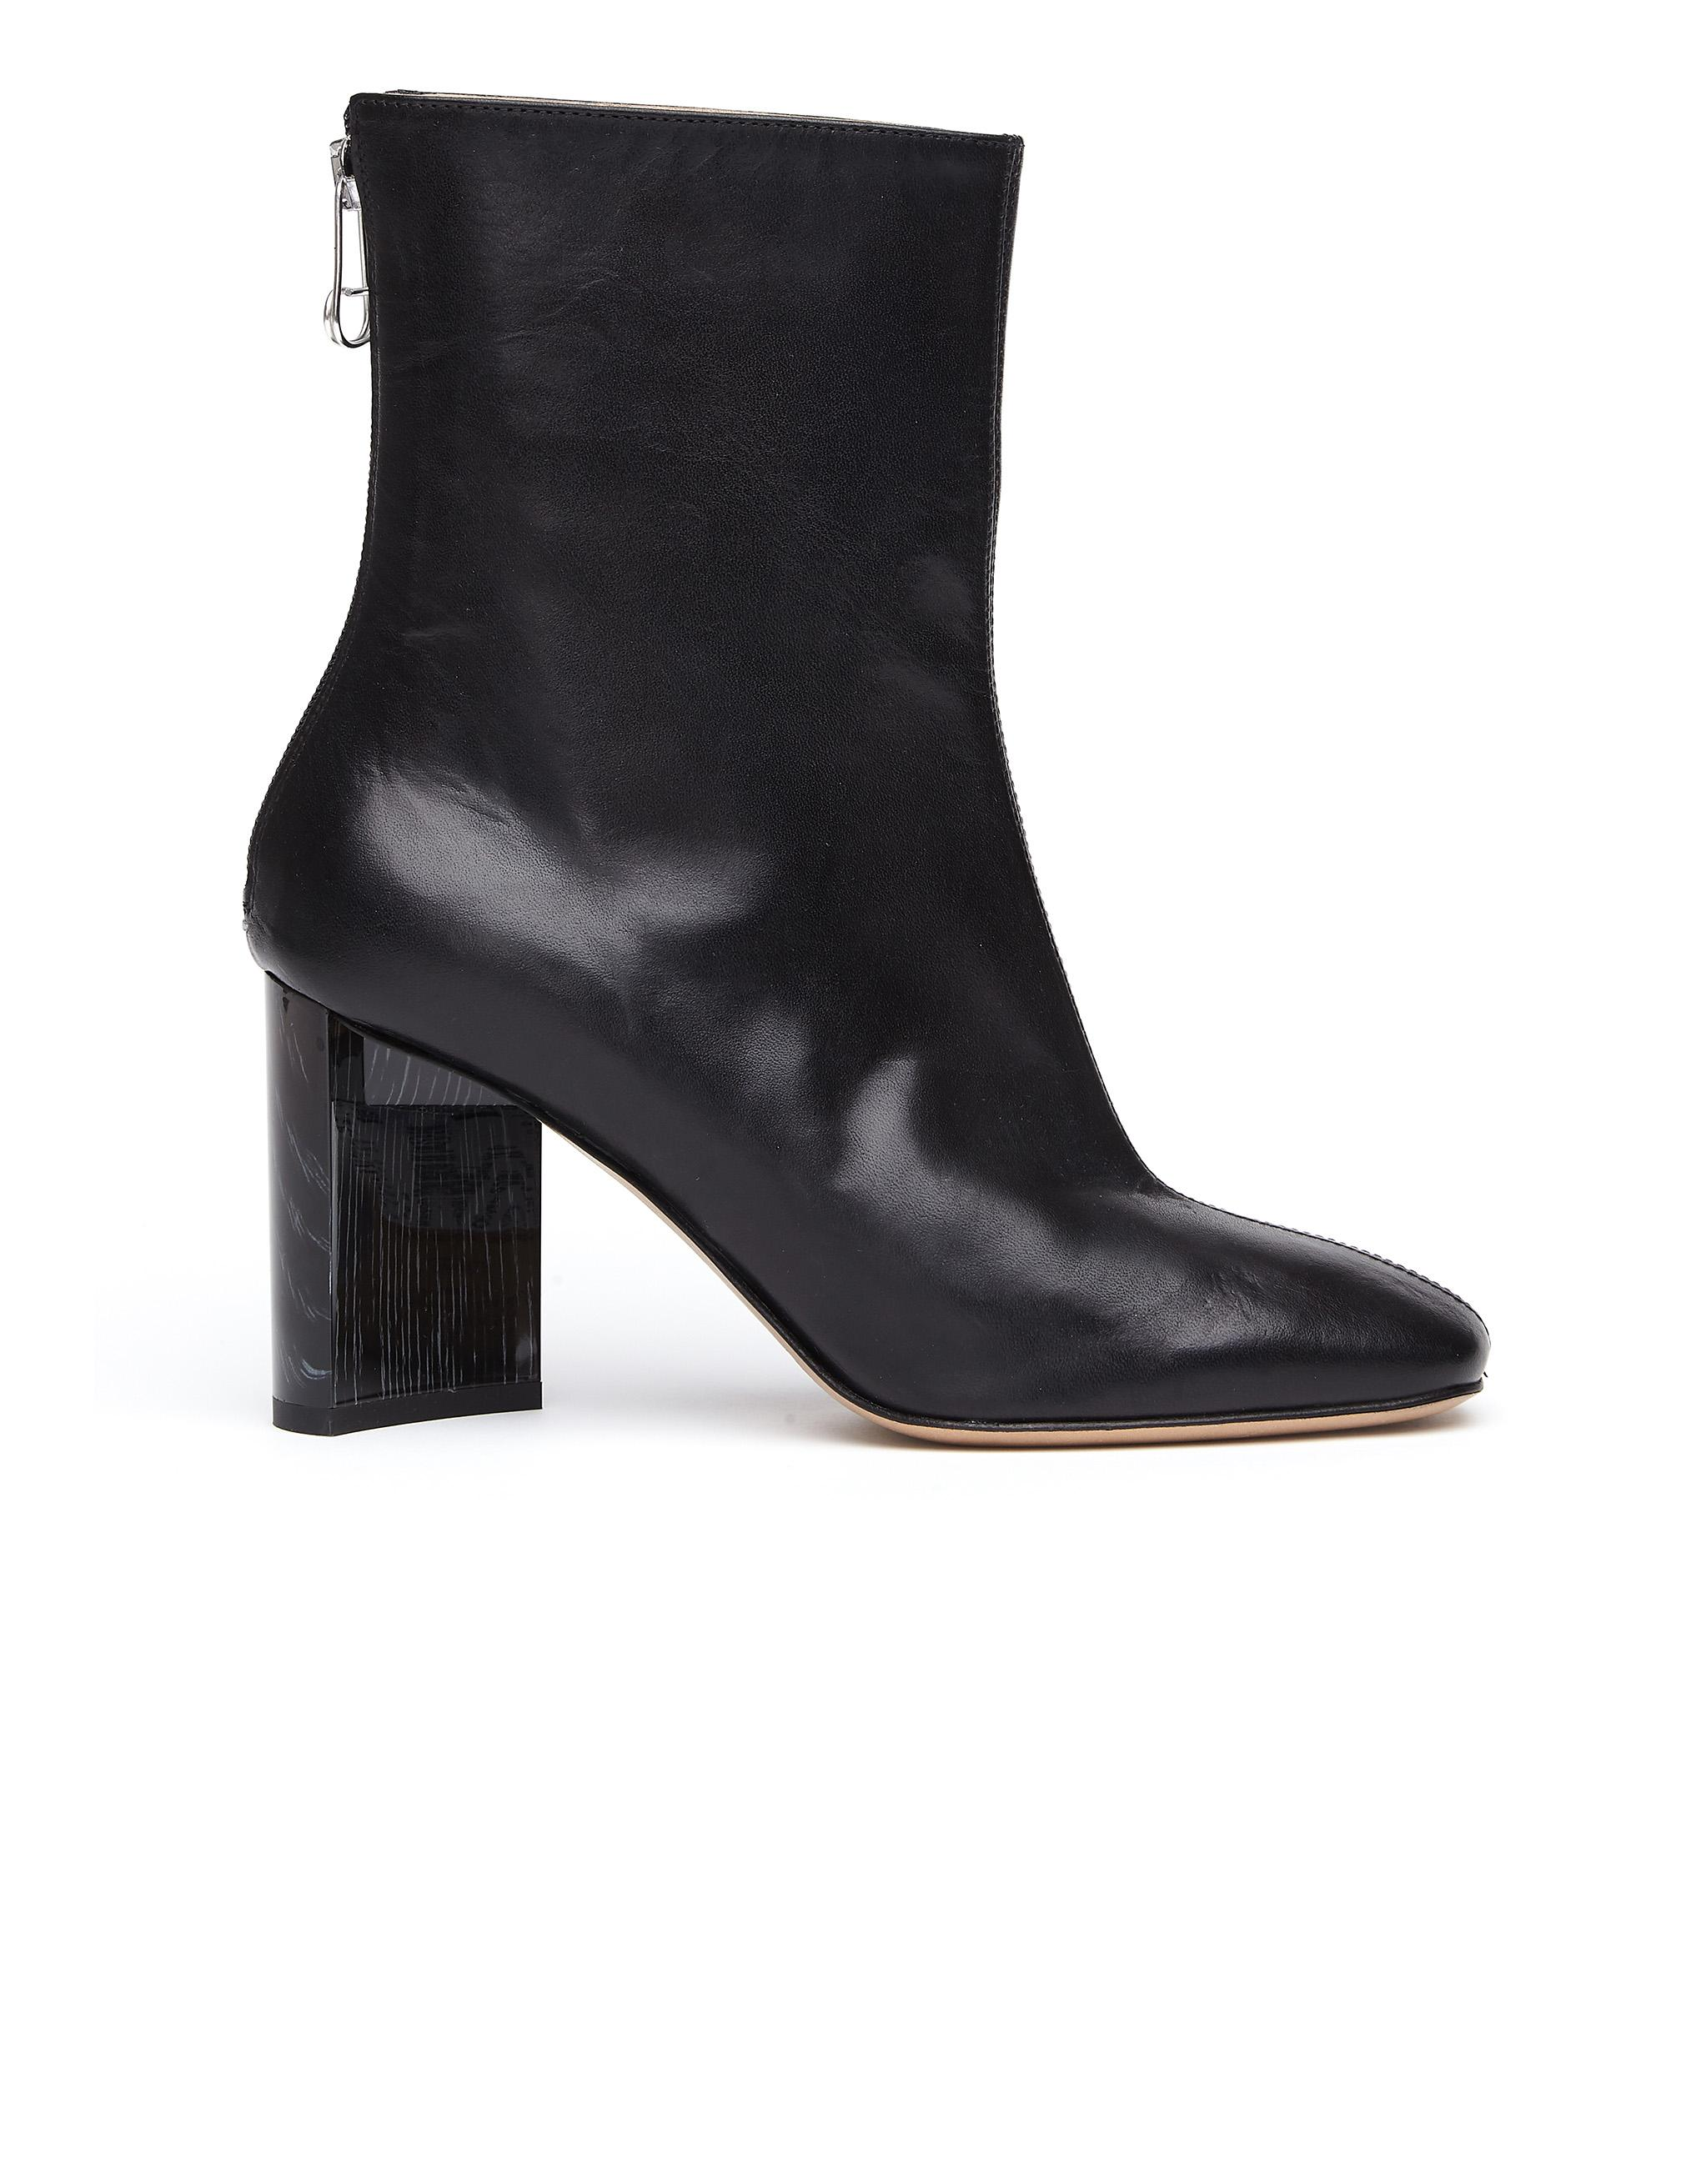 bb3a5512e Maison Margiela 'Cut Heel' Leather Ankle Boots In Black | ModeSens